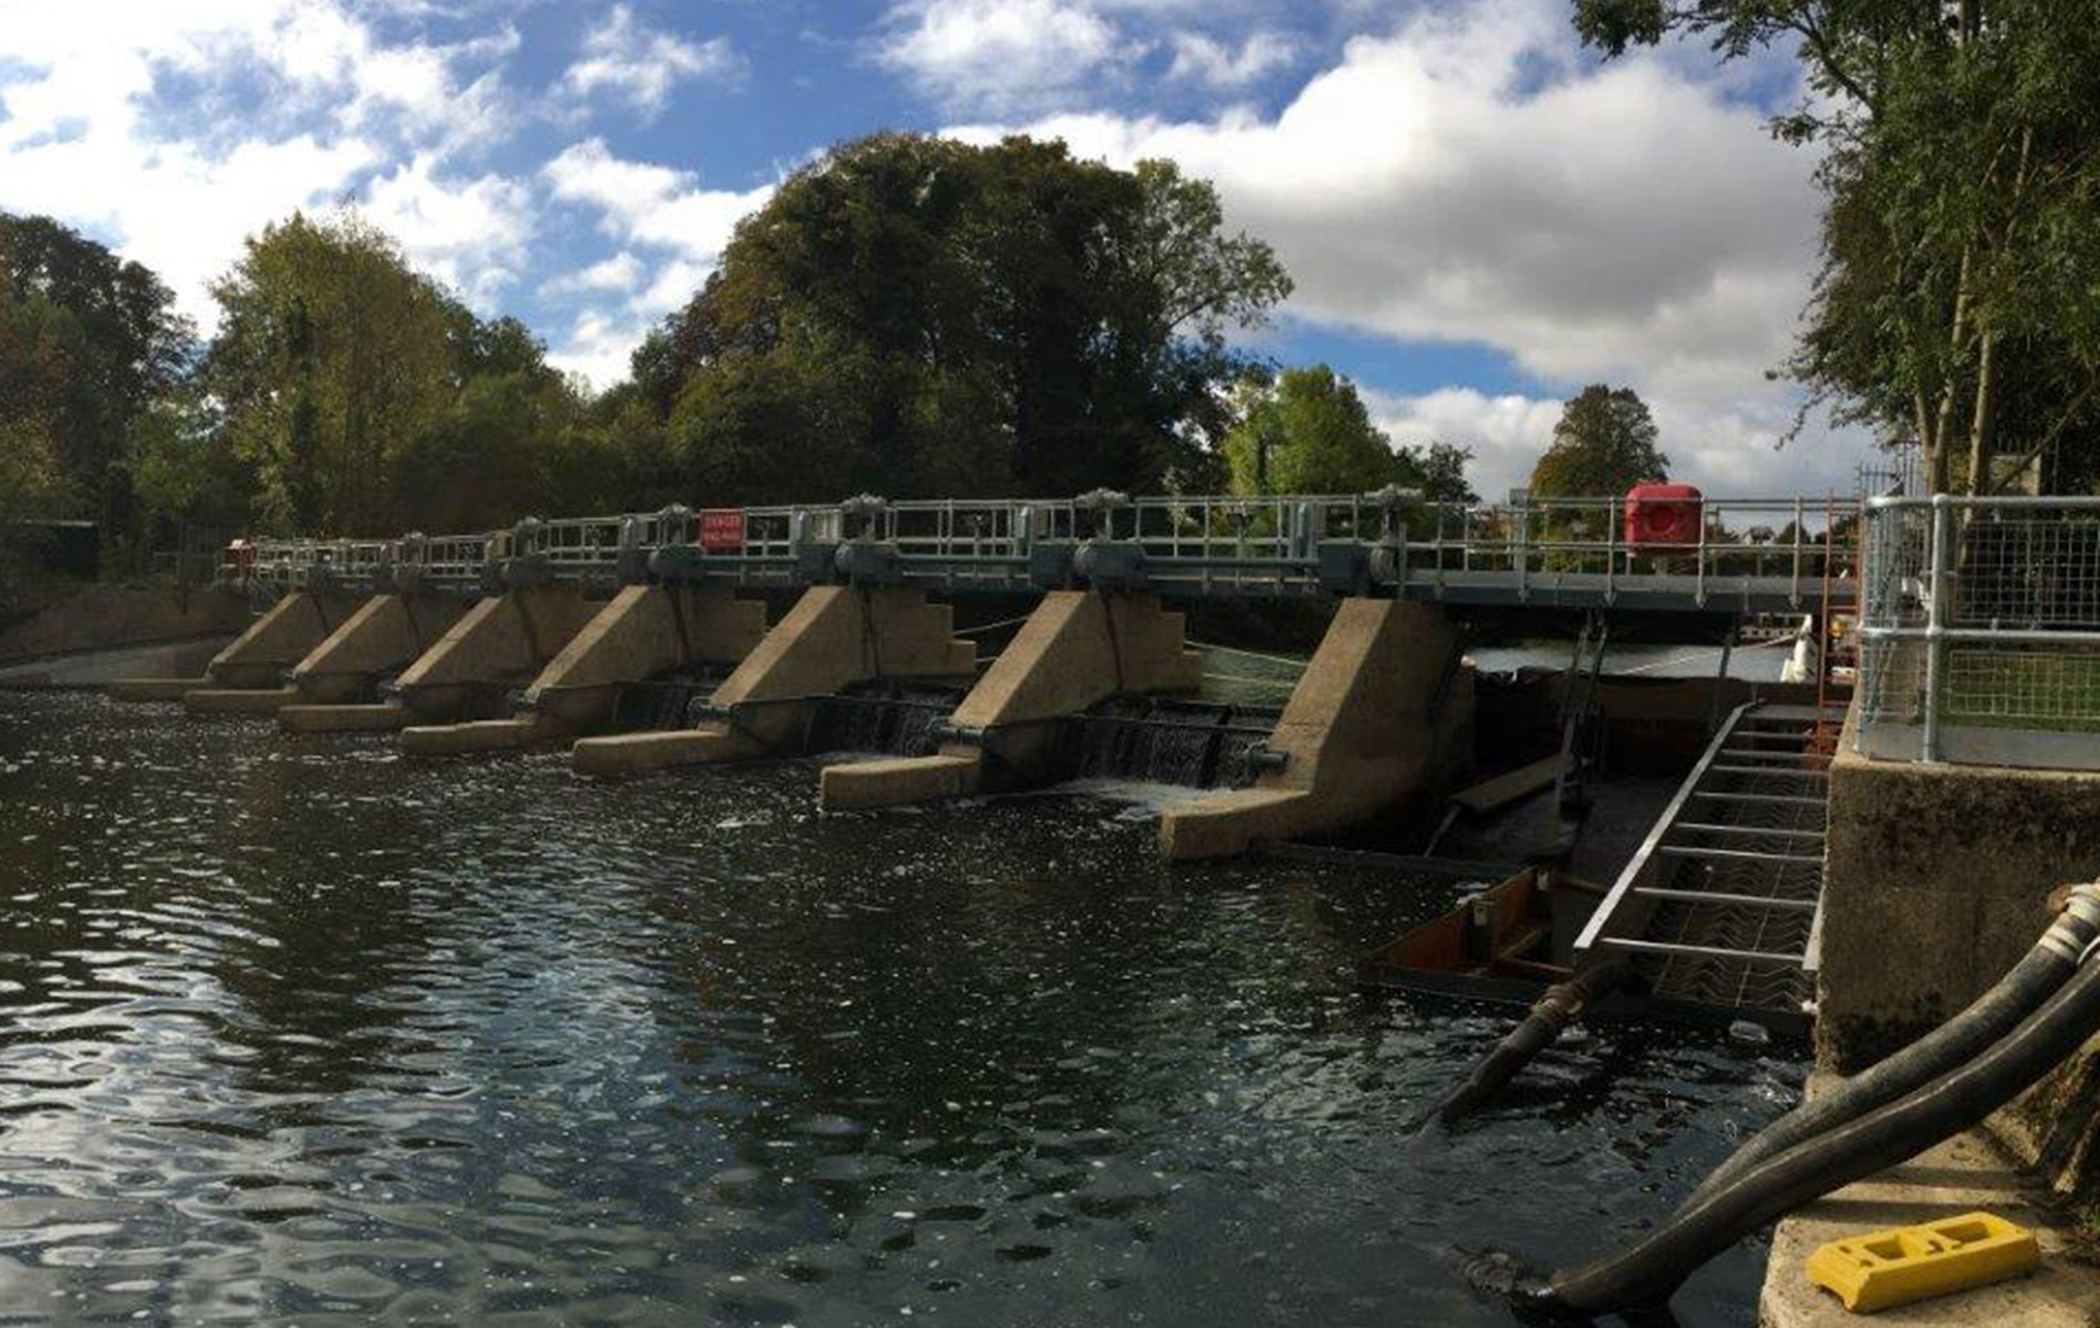 Modular weir gate design slashes time to complete refurbishment project at Cookham Weir